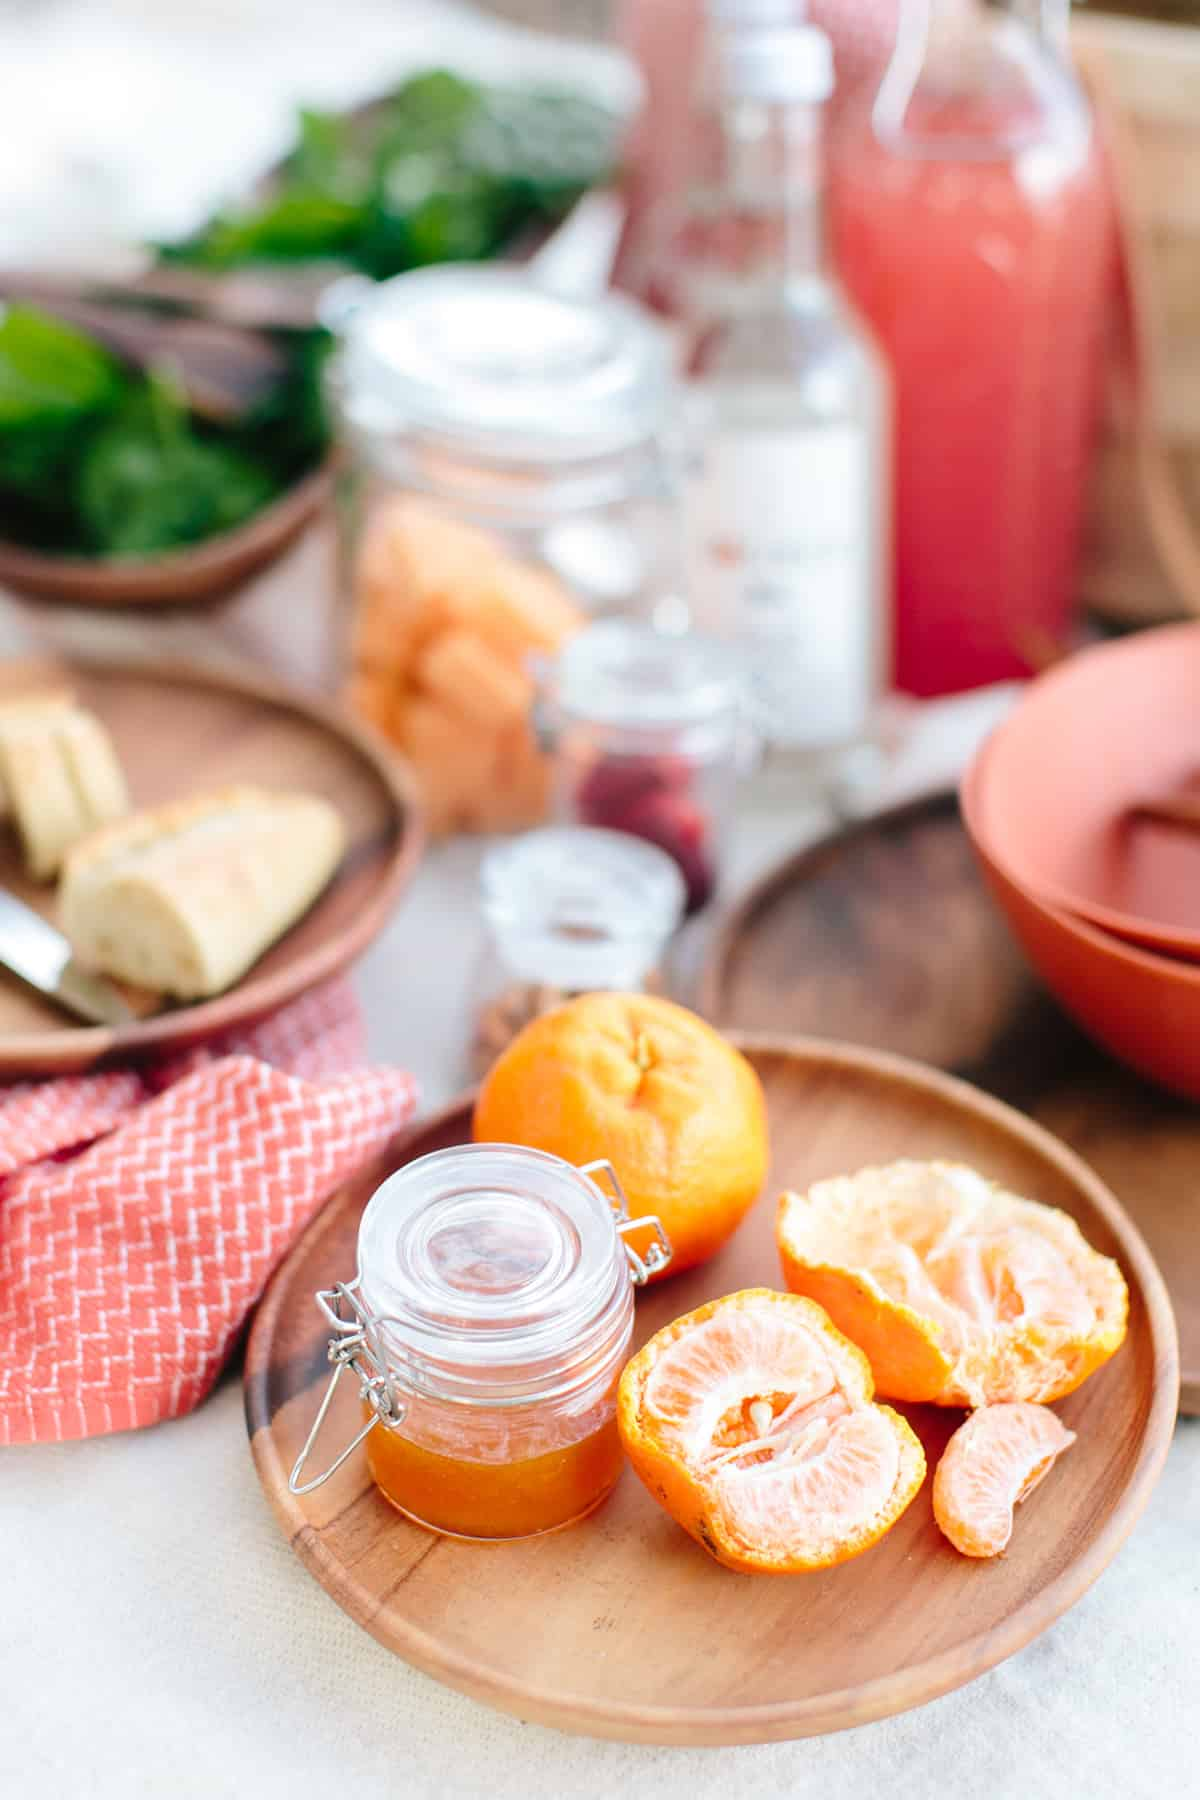 A table with jars of syrups and cocktail ingredients using mise en place technique at home